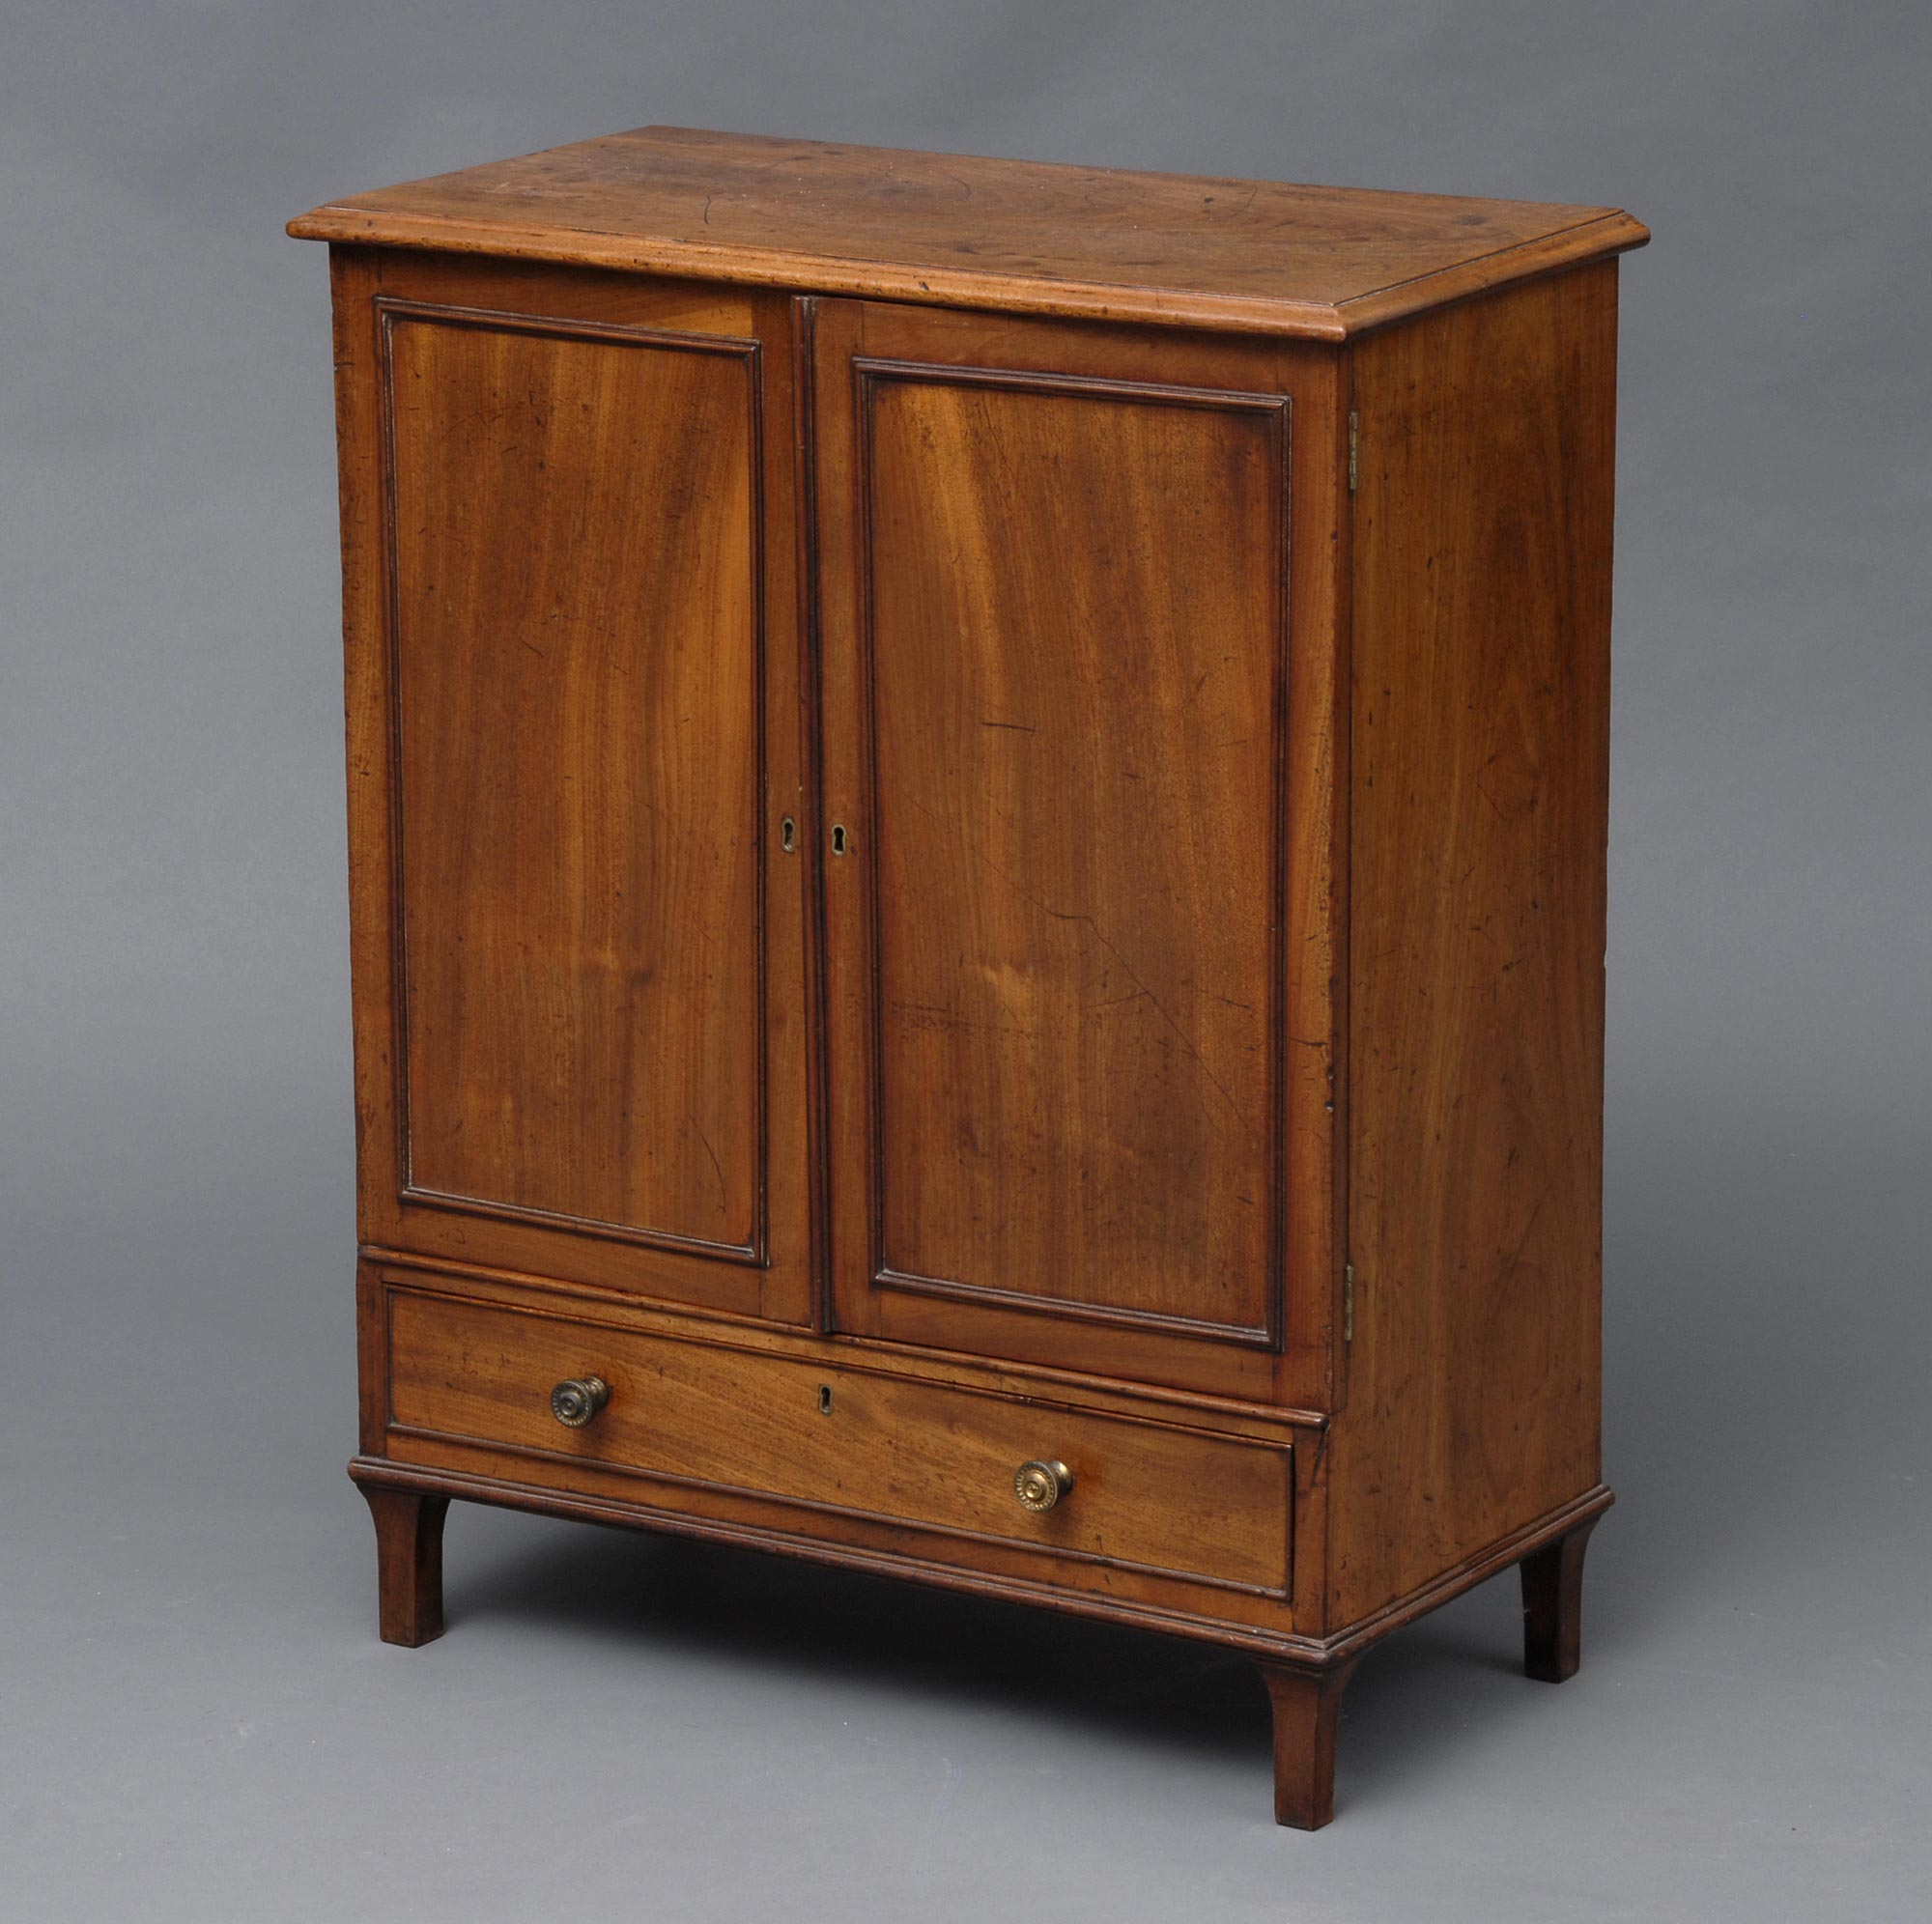 187 Product 187 Regency Small Cabinet